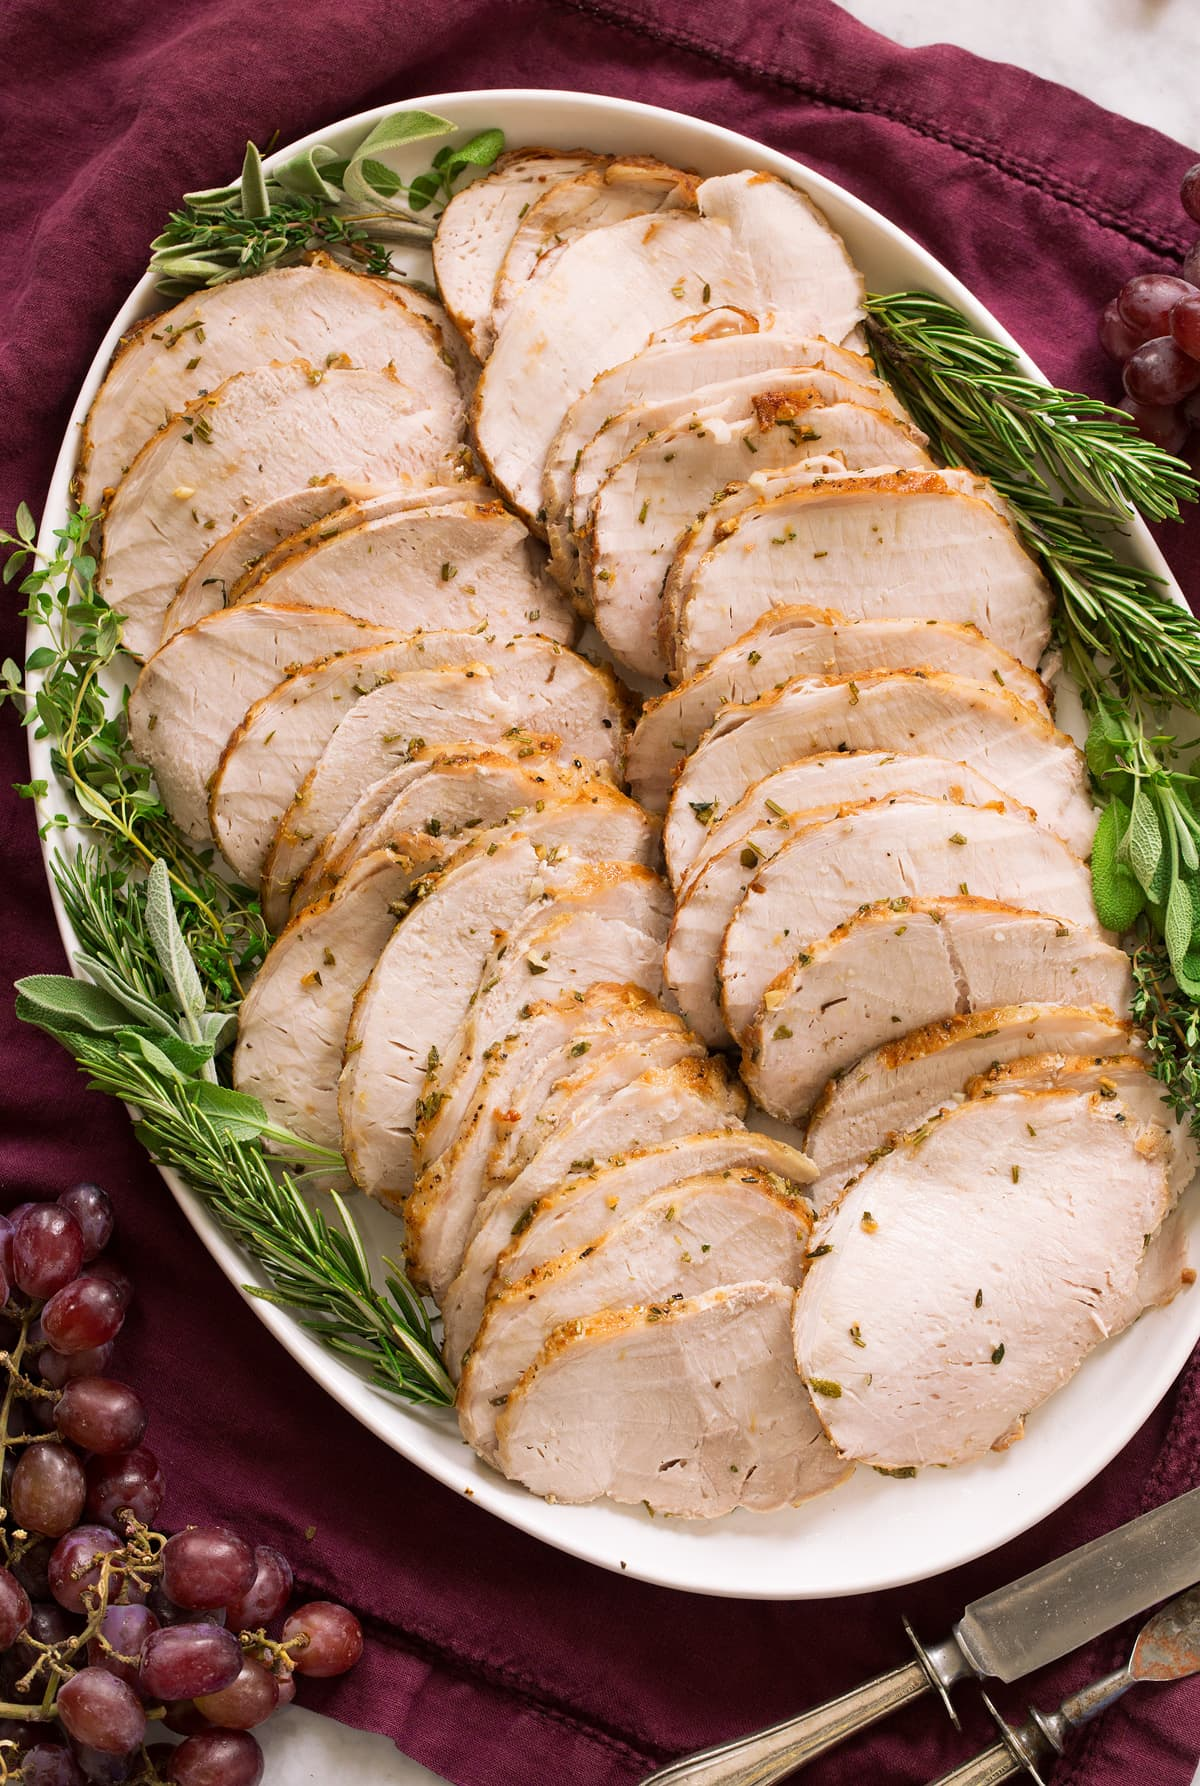 Pork loin shown cooked and thinly sliced on a white oval serving platter over a purple cloth.